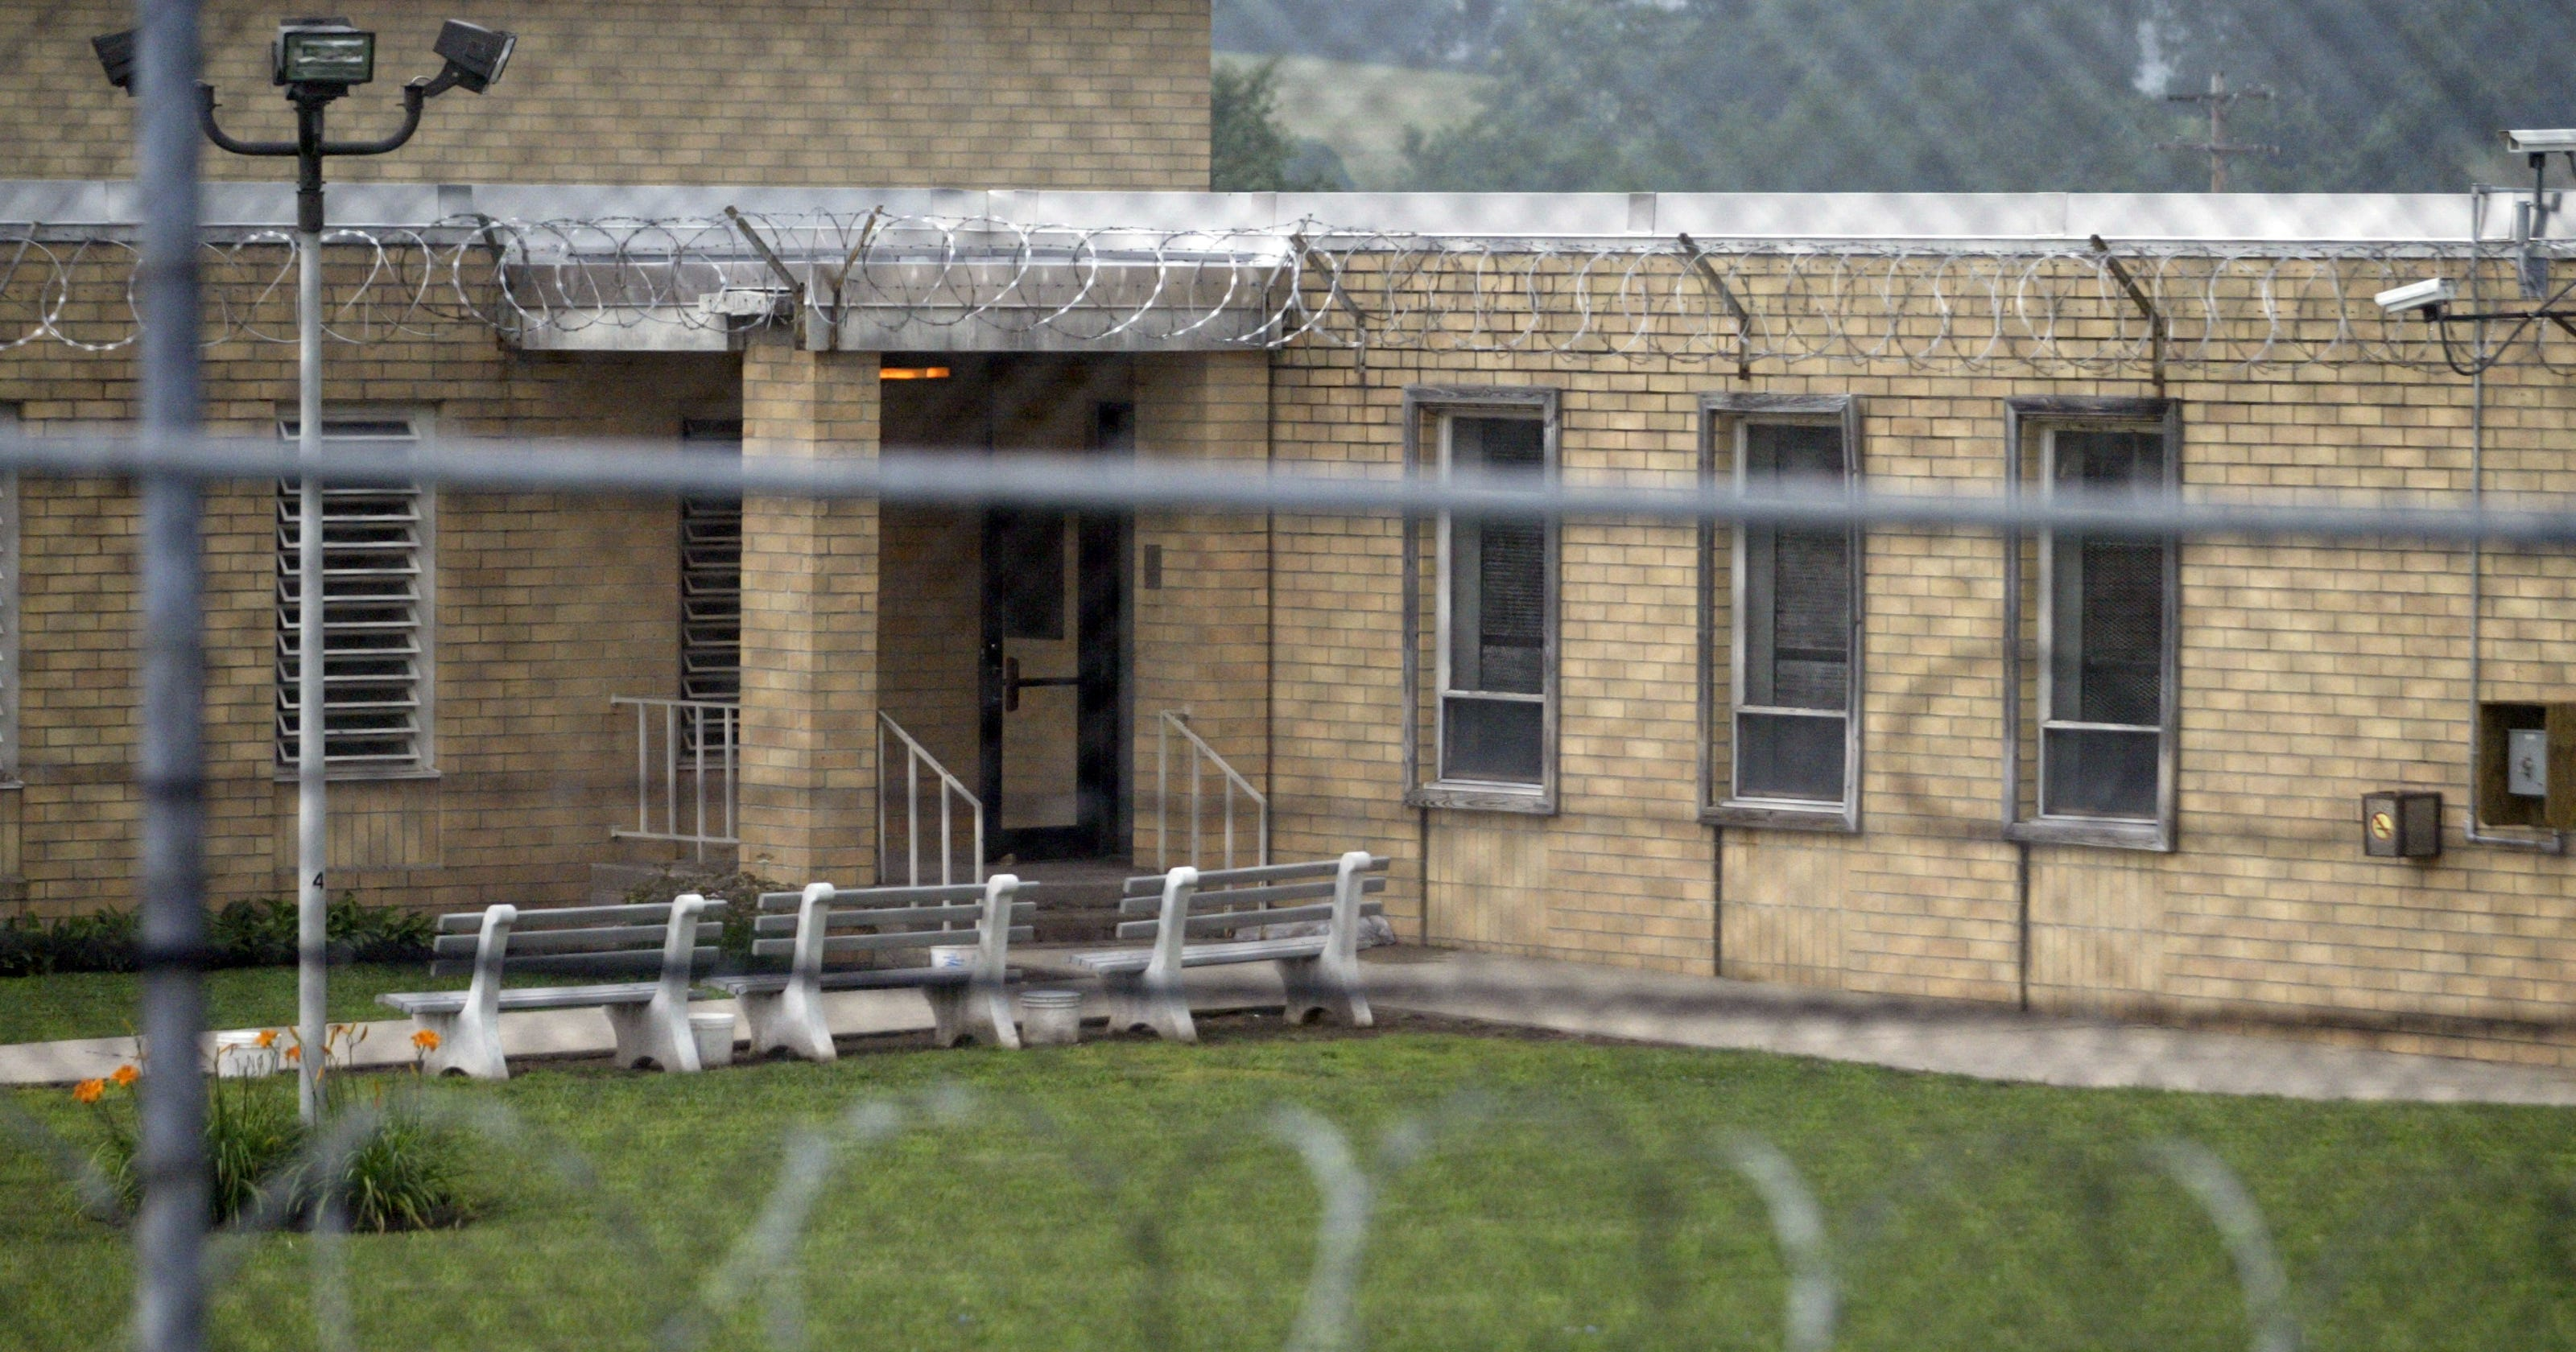 Two former Edna Mahan inmates suing state Department of